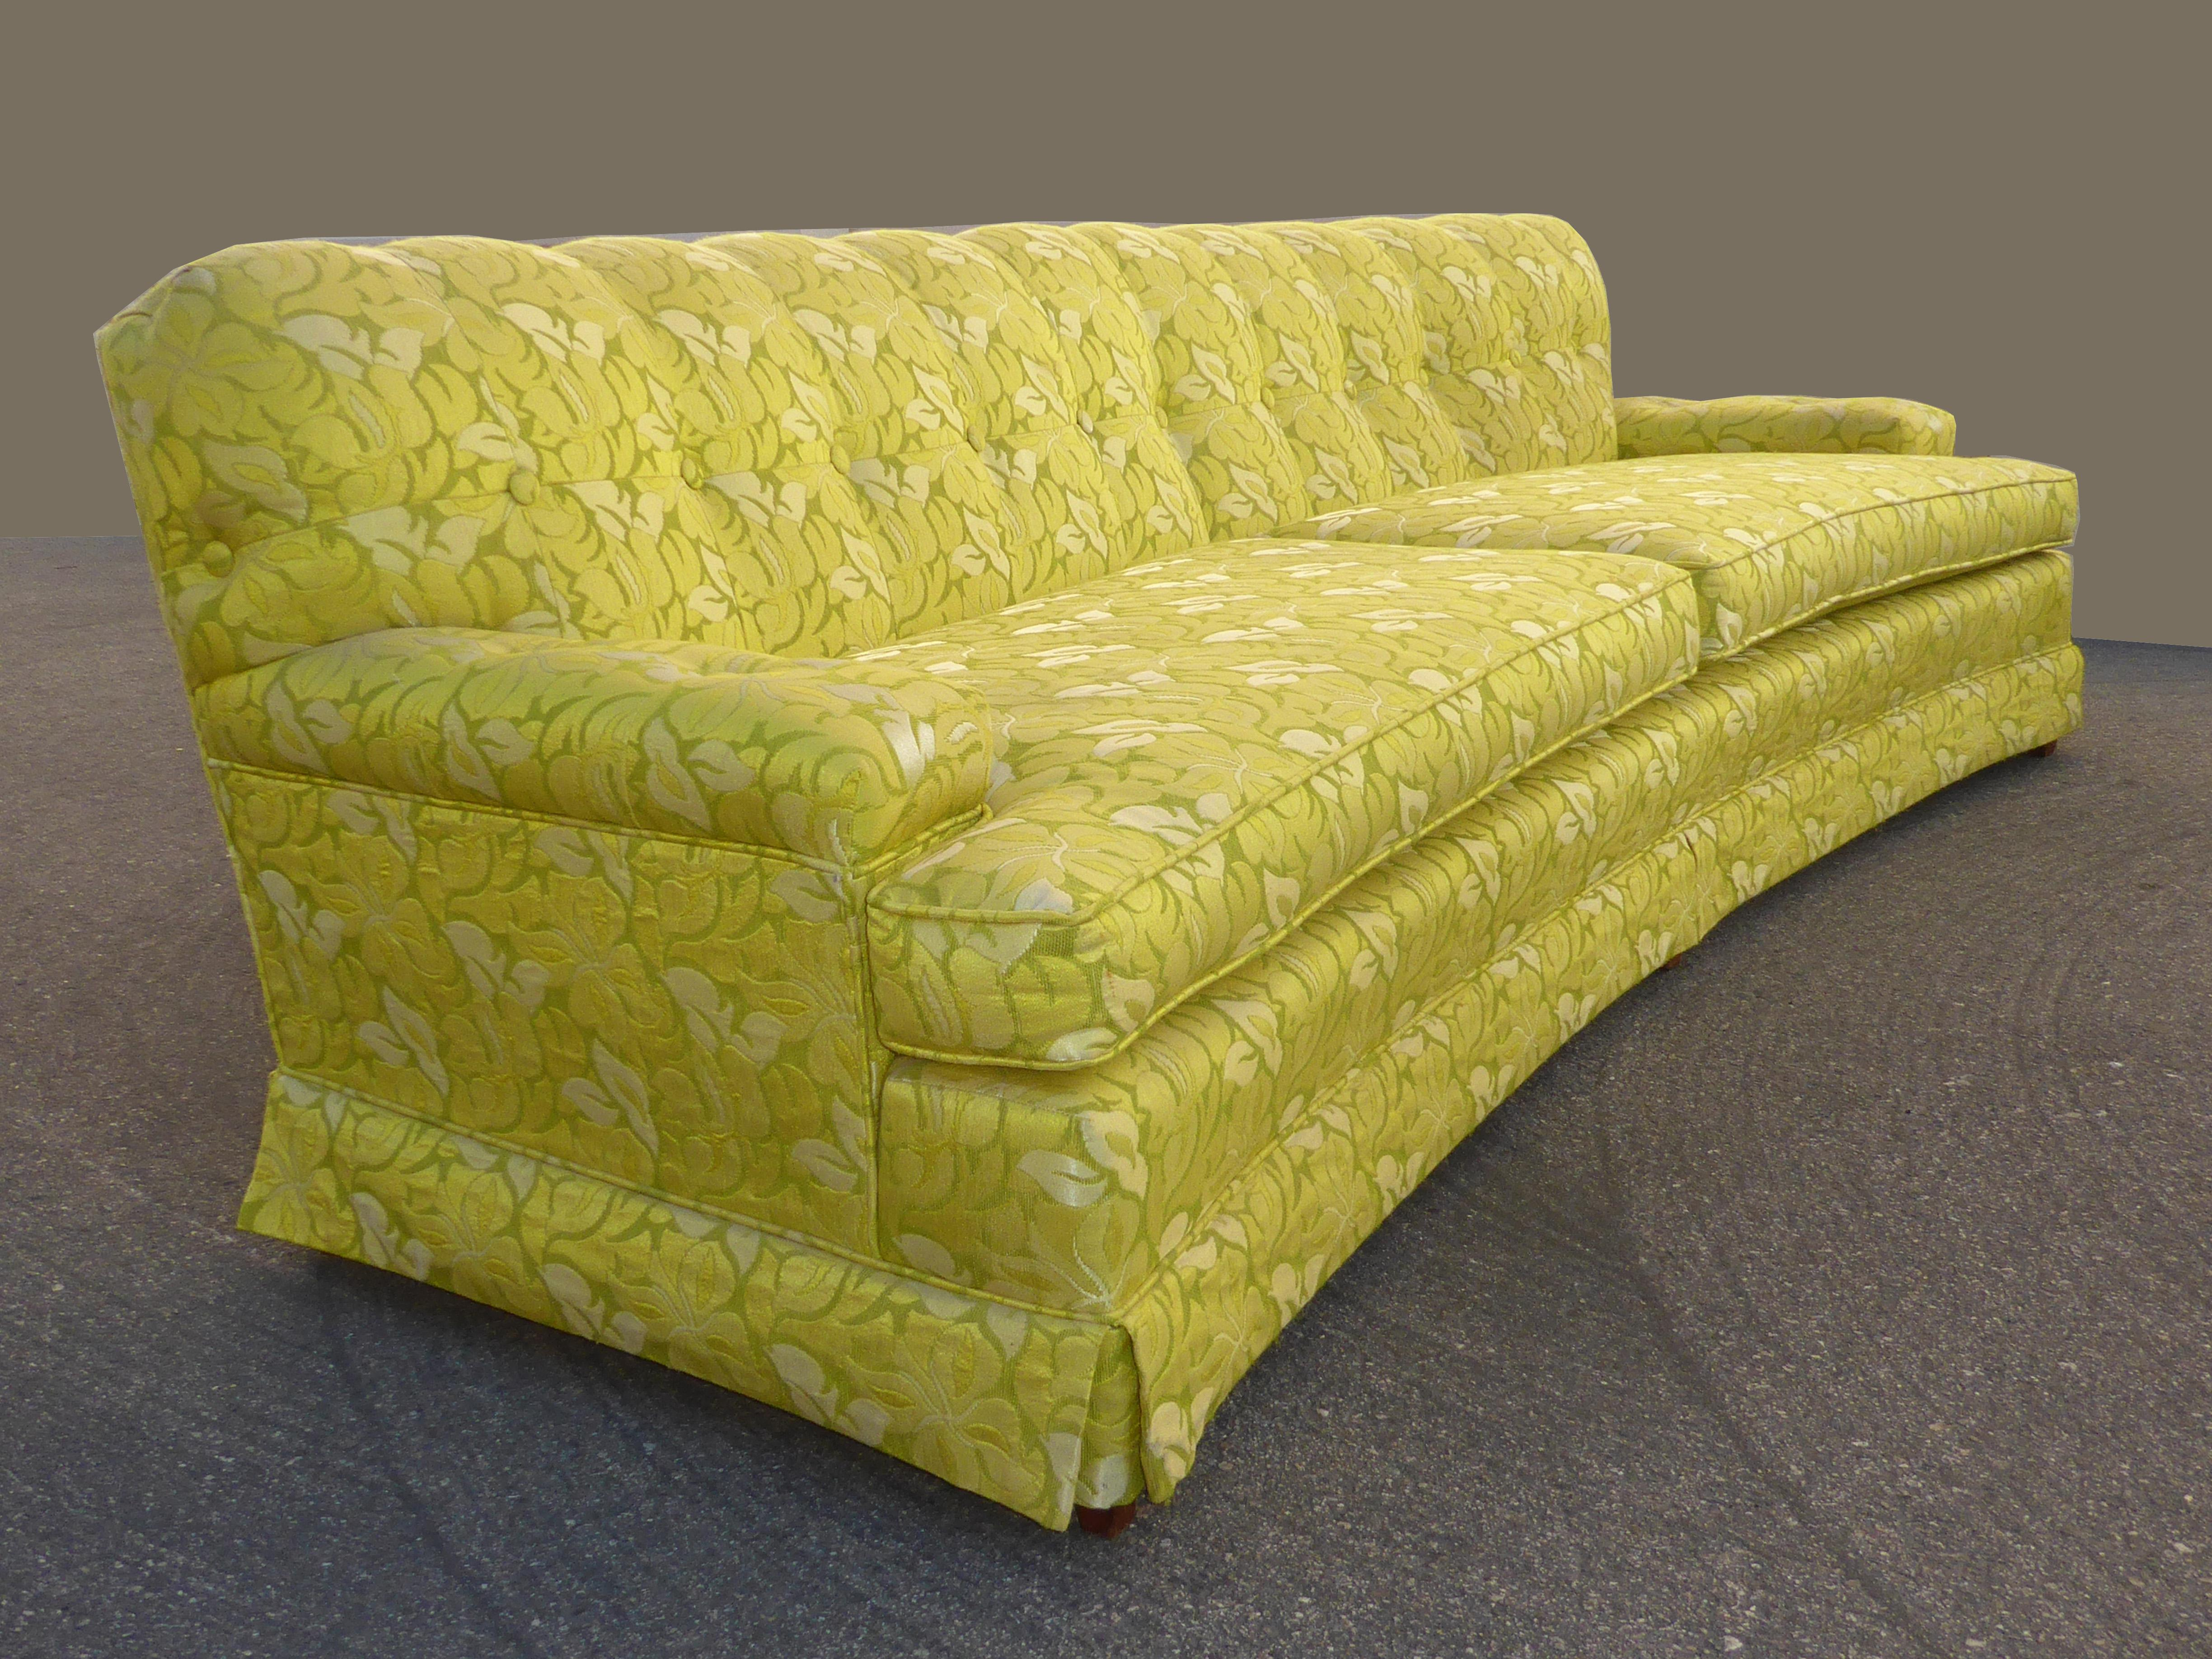 Merveilleux Mid Century Modern Vintage Mid Century Modern Curved Front Yellow U0026 Green Floral  Sofa